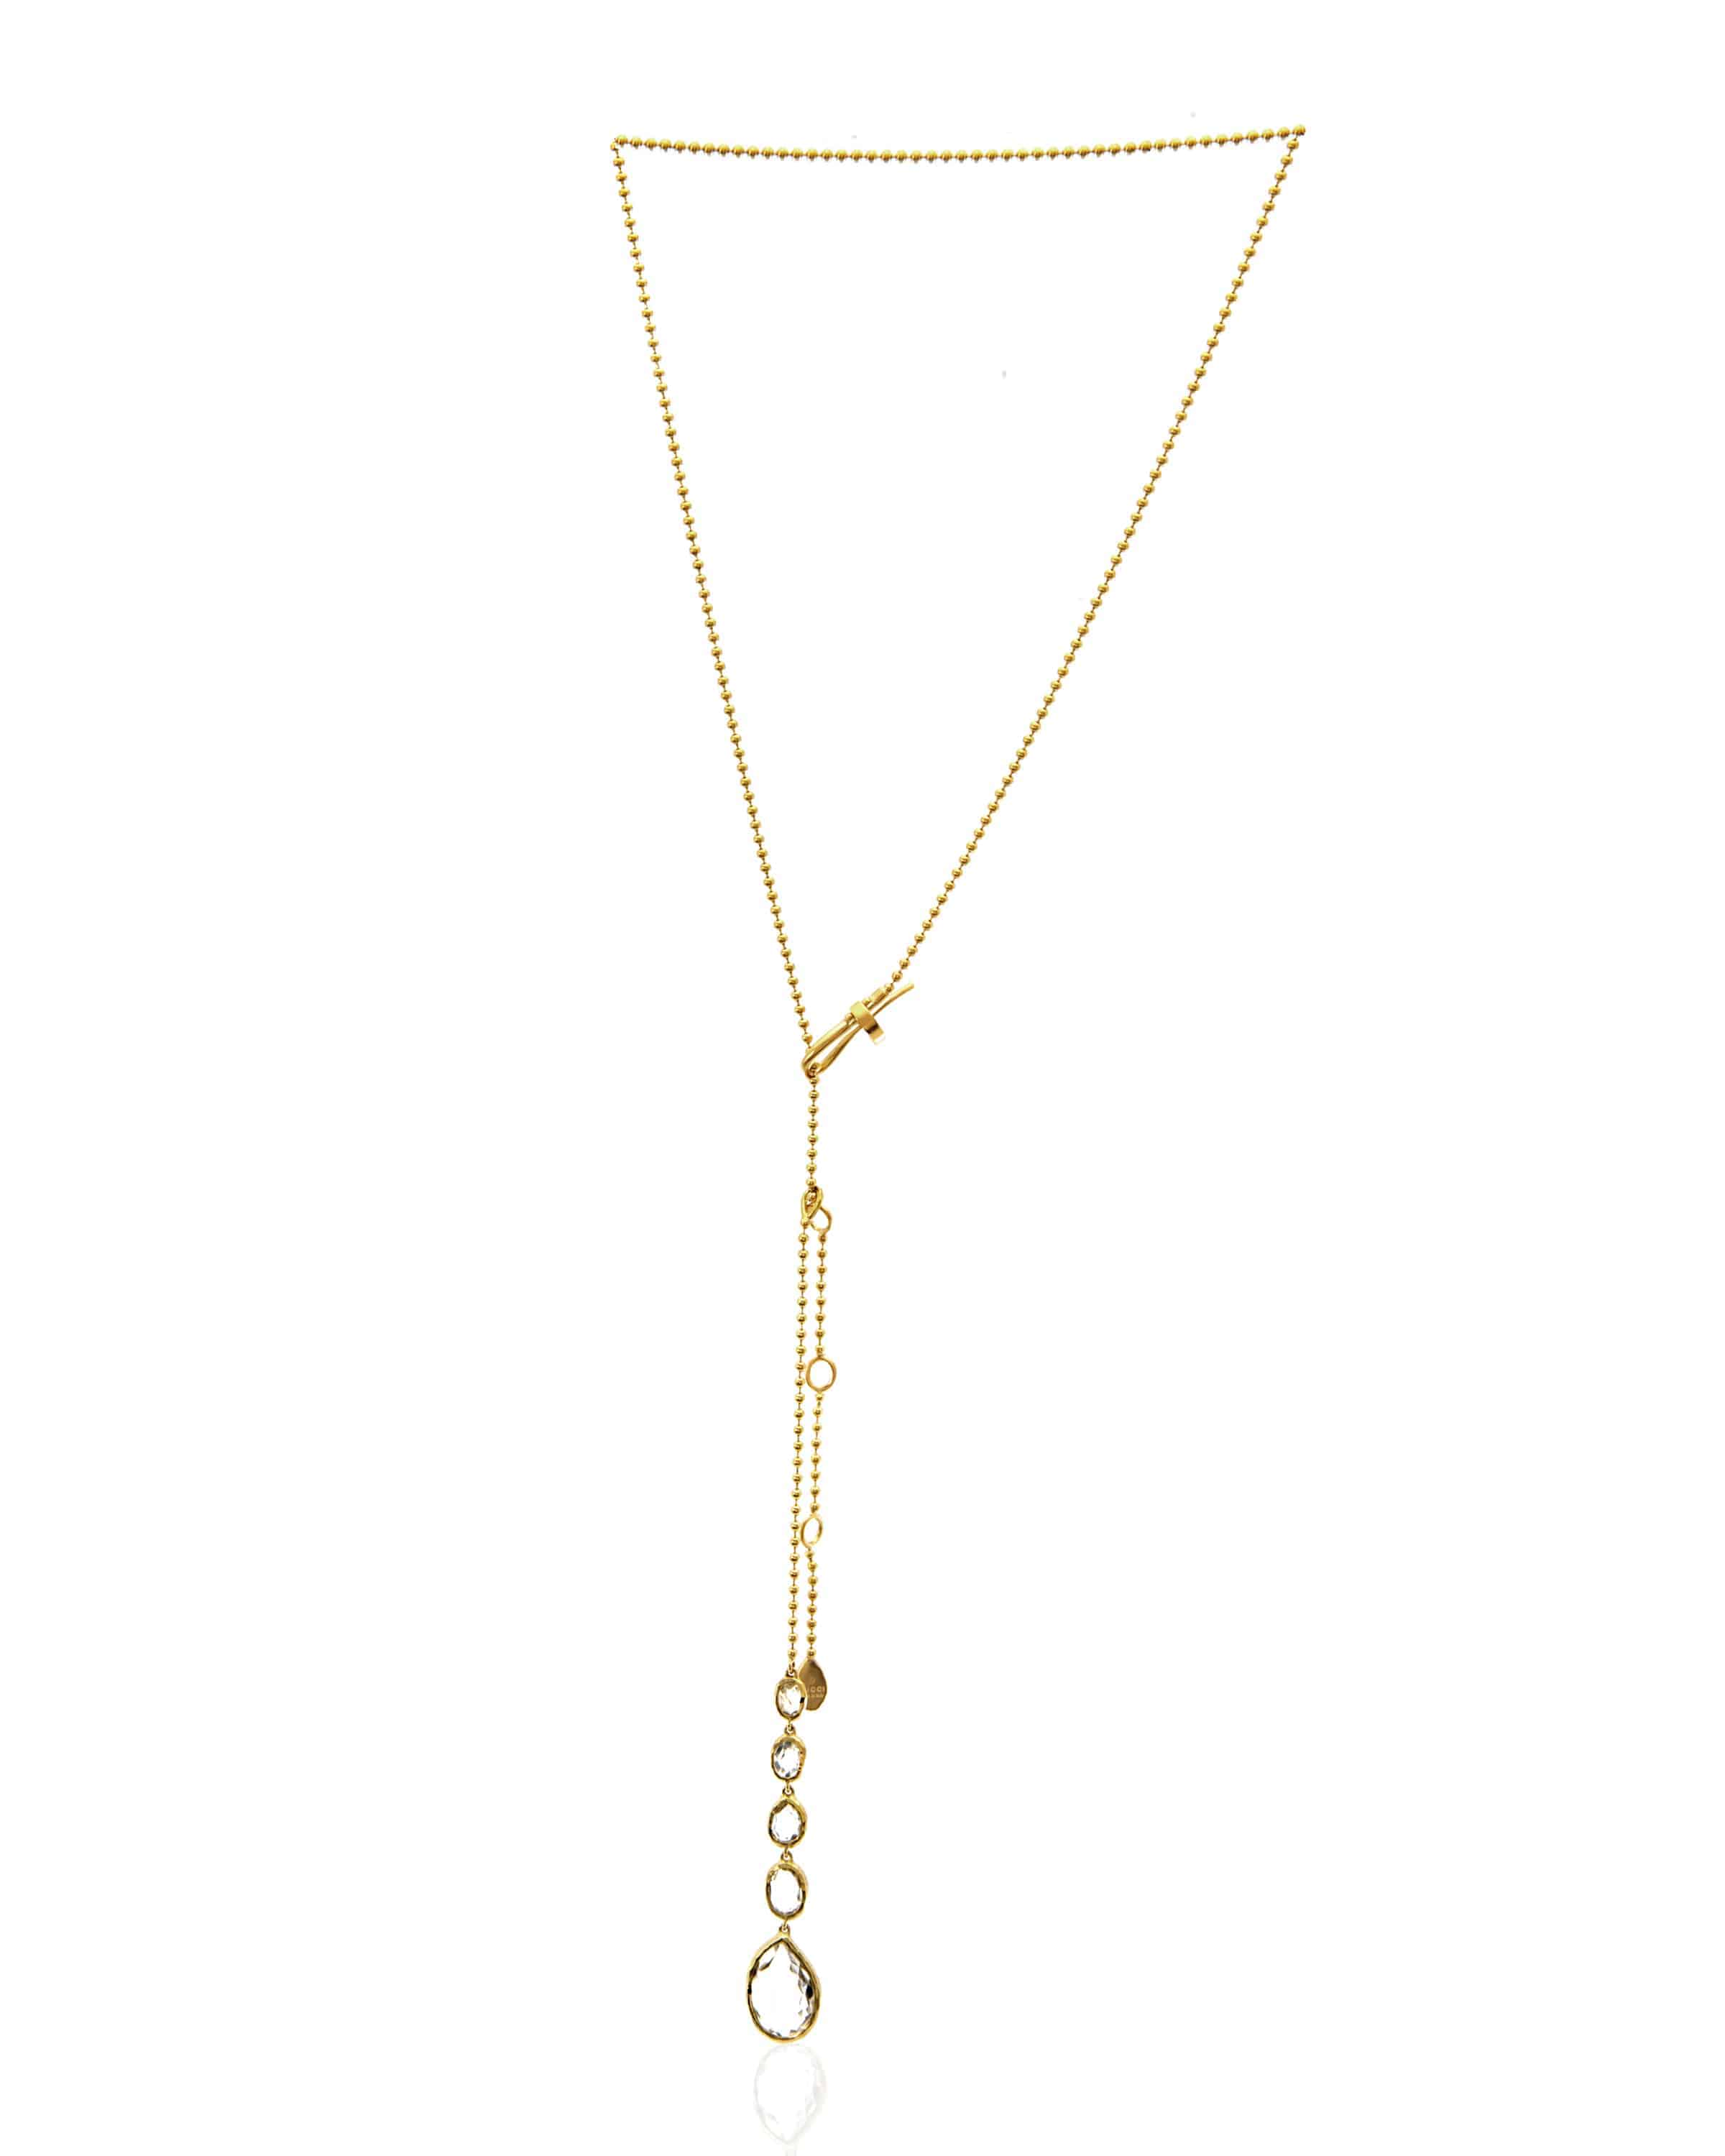 Gucci Rocca 18k Yellow Gold Quartz Lariat Necklace 125433J8C70806